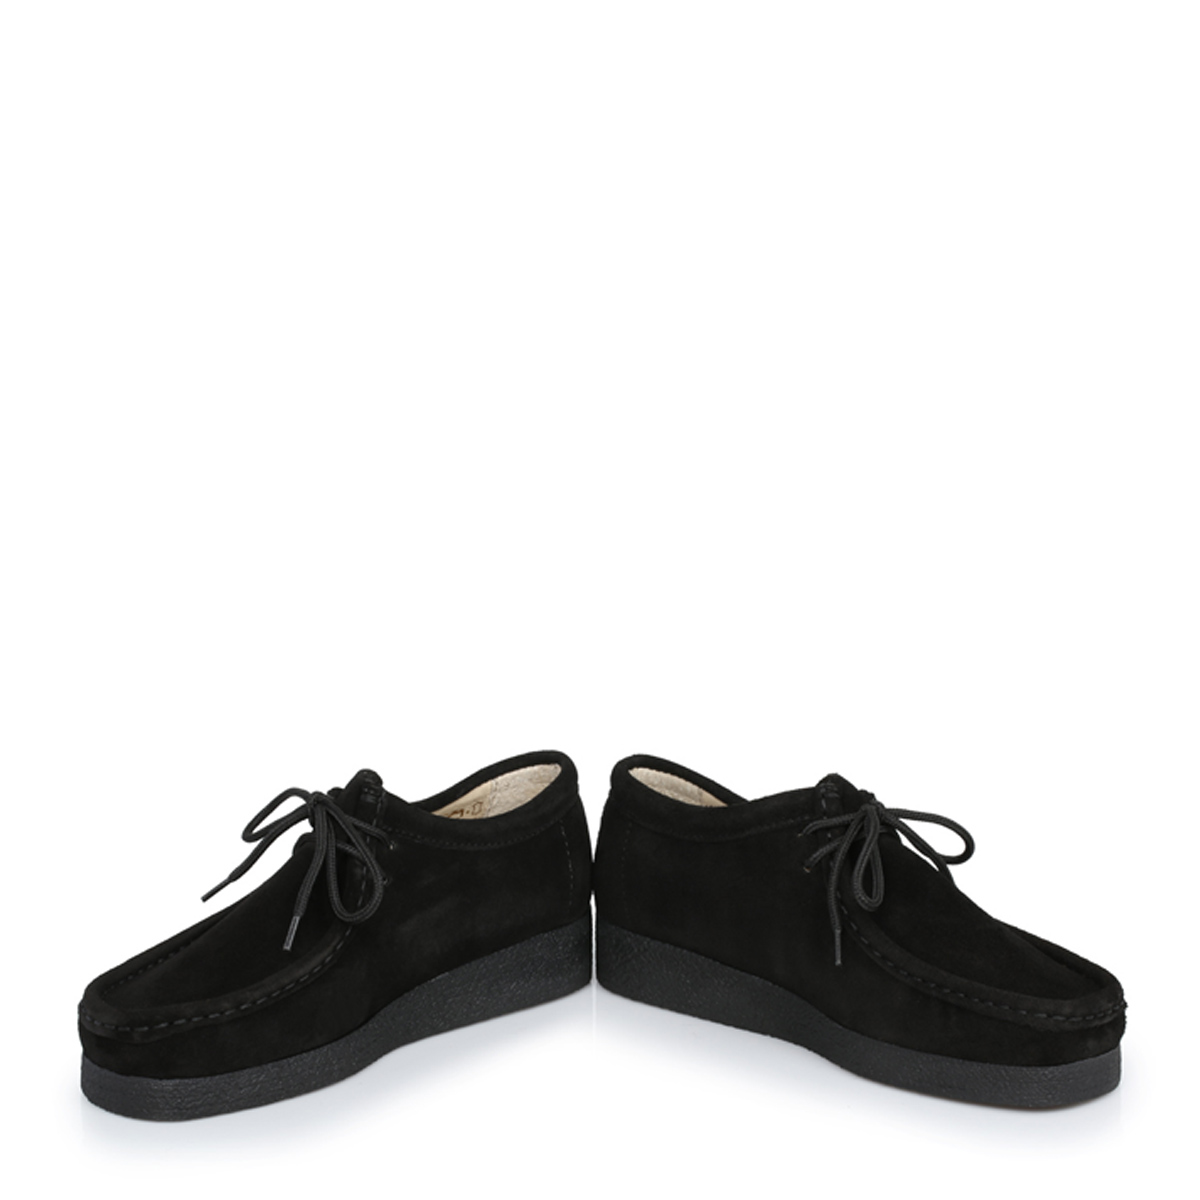 Tower Footwear Negro Wallabee Suede Zapatos-UK 5 L5Xs4Zn